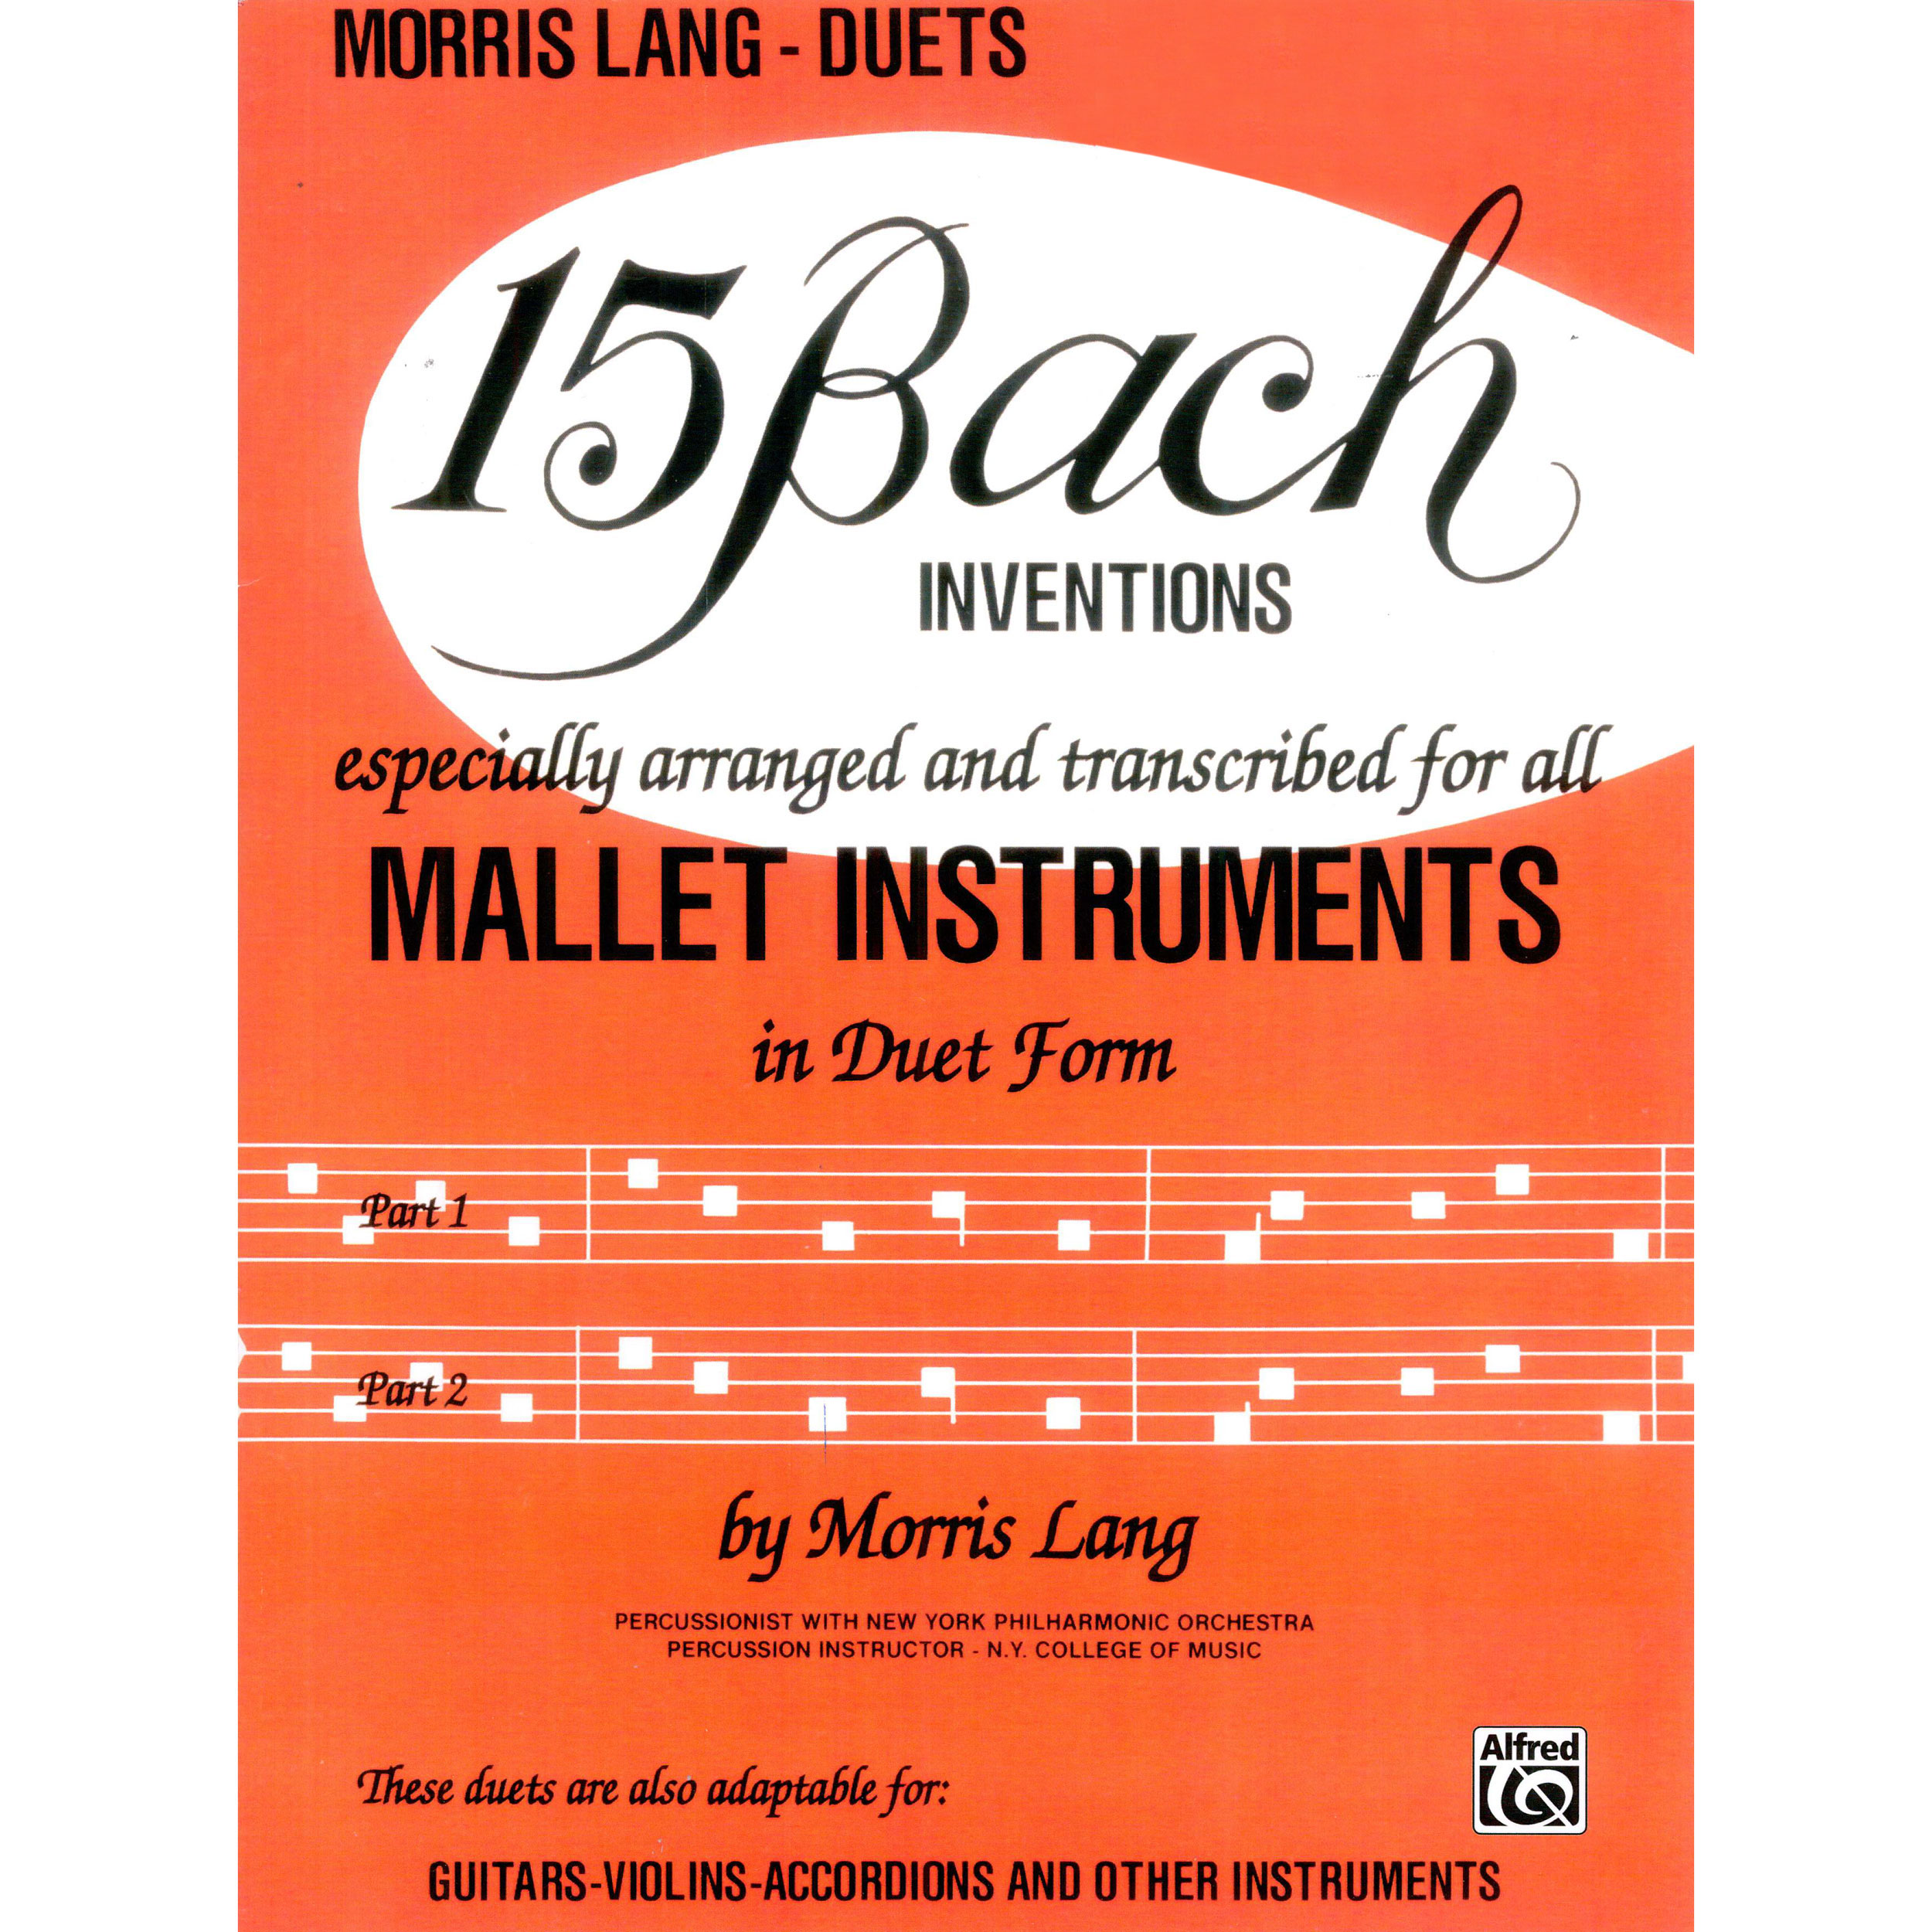 15 Bach Inventions by Morris Lang